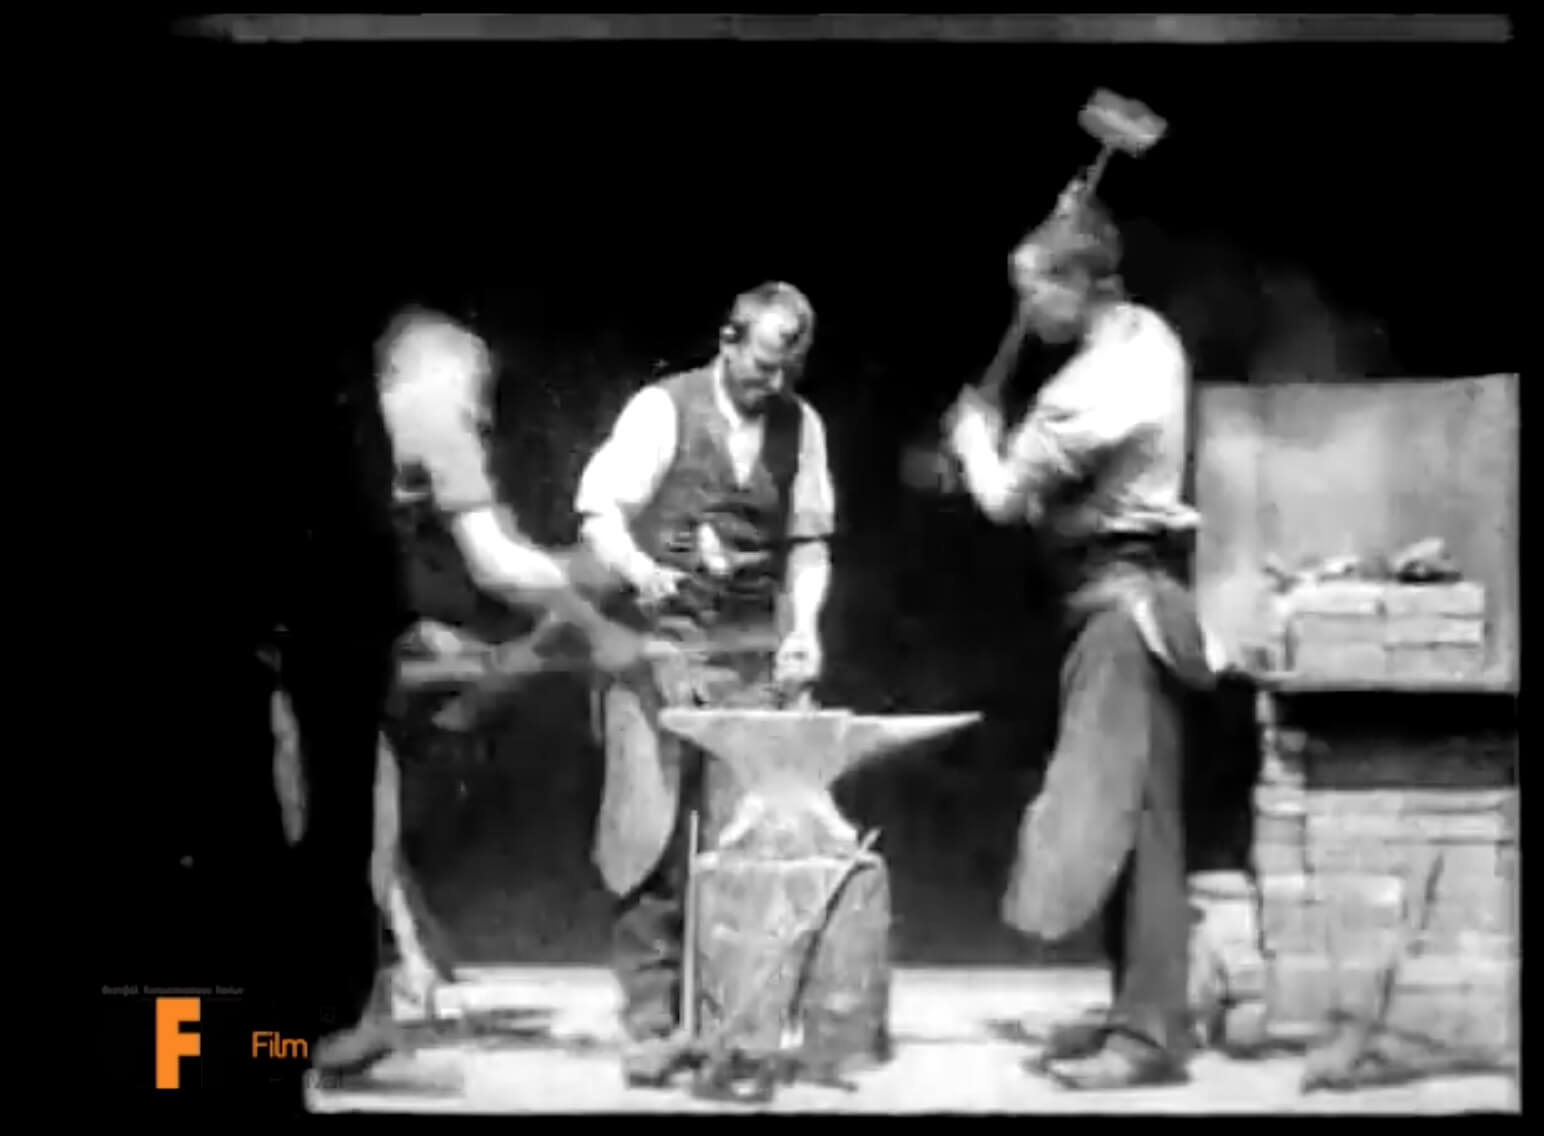 Blacksmith Scene (1893) - 1st Staged Narrative in Film - William K.L. Dickson William Heise